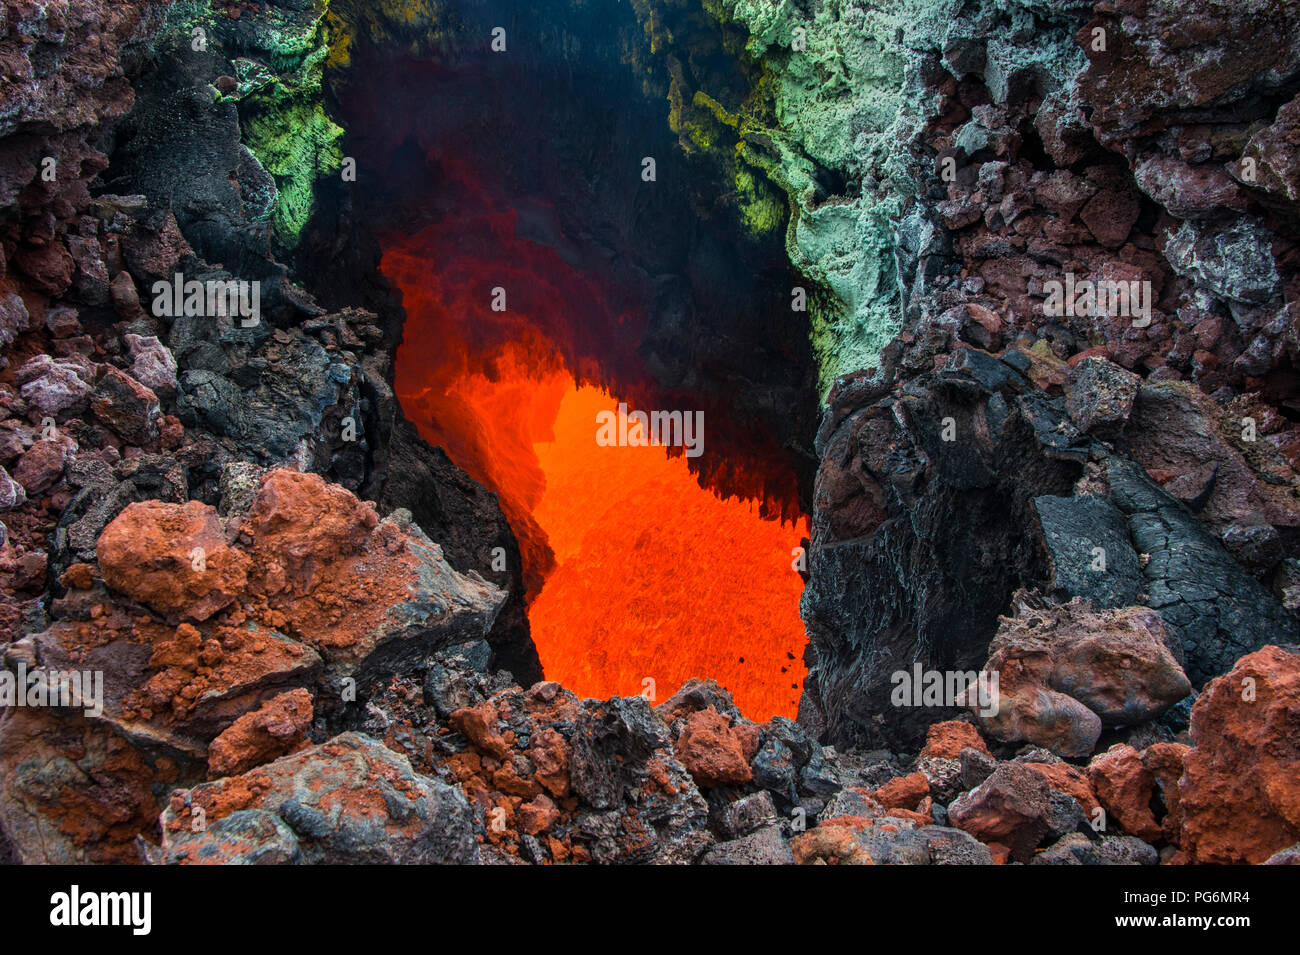 Active magma in a stream below the Tolbachik volcano, Kamchatka, Russia - Stock Image